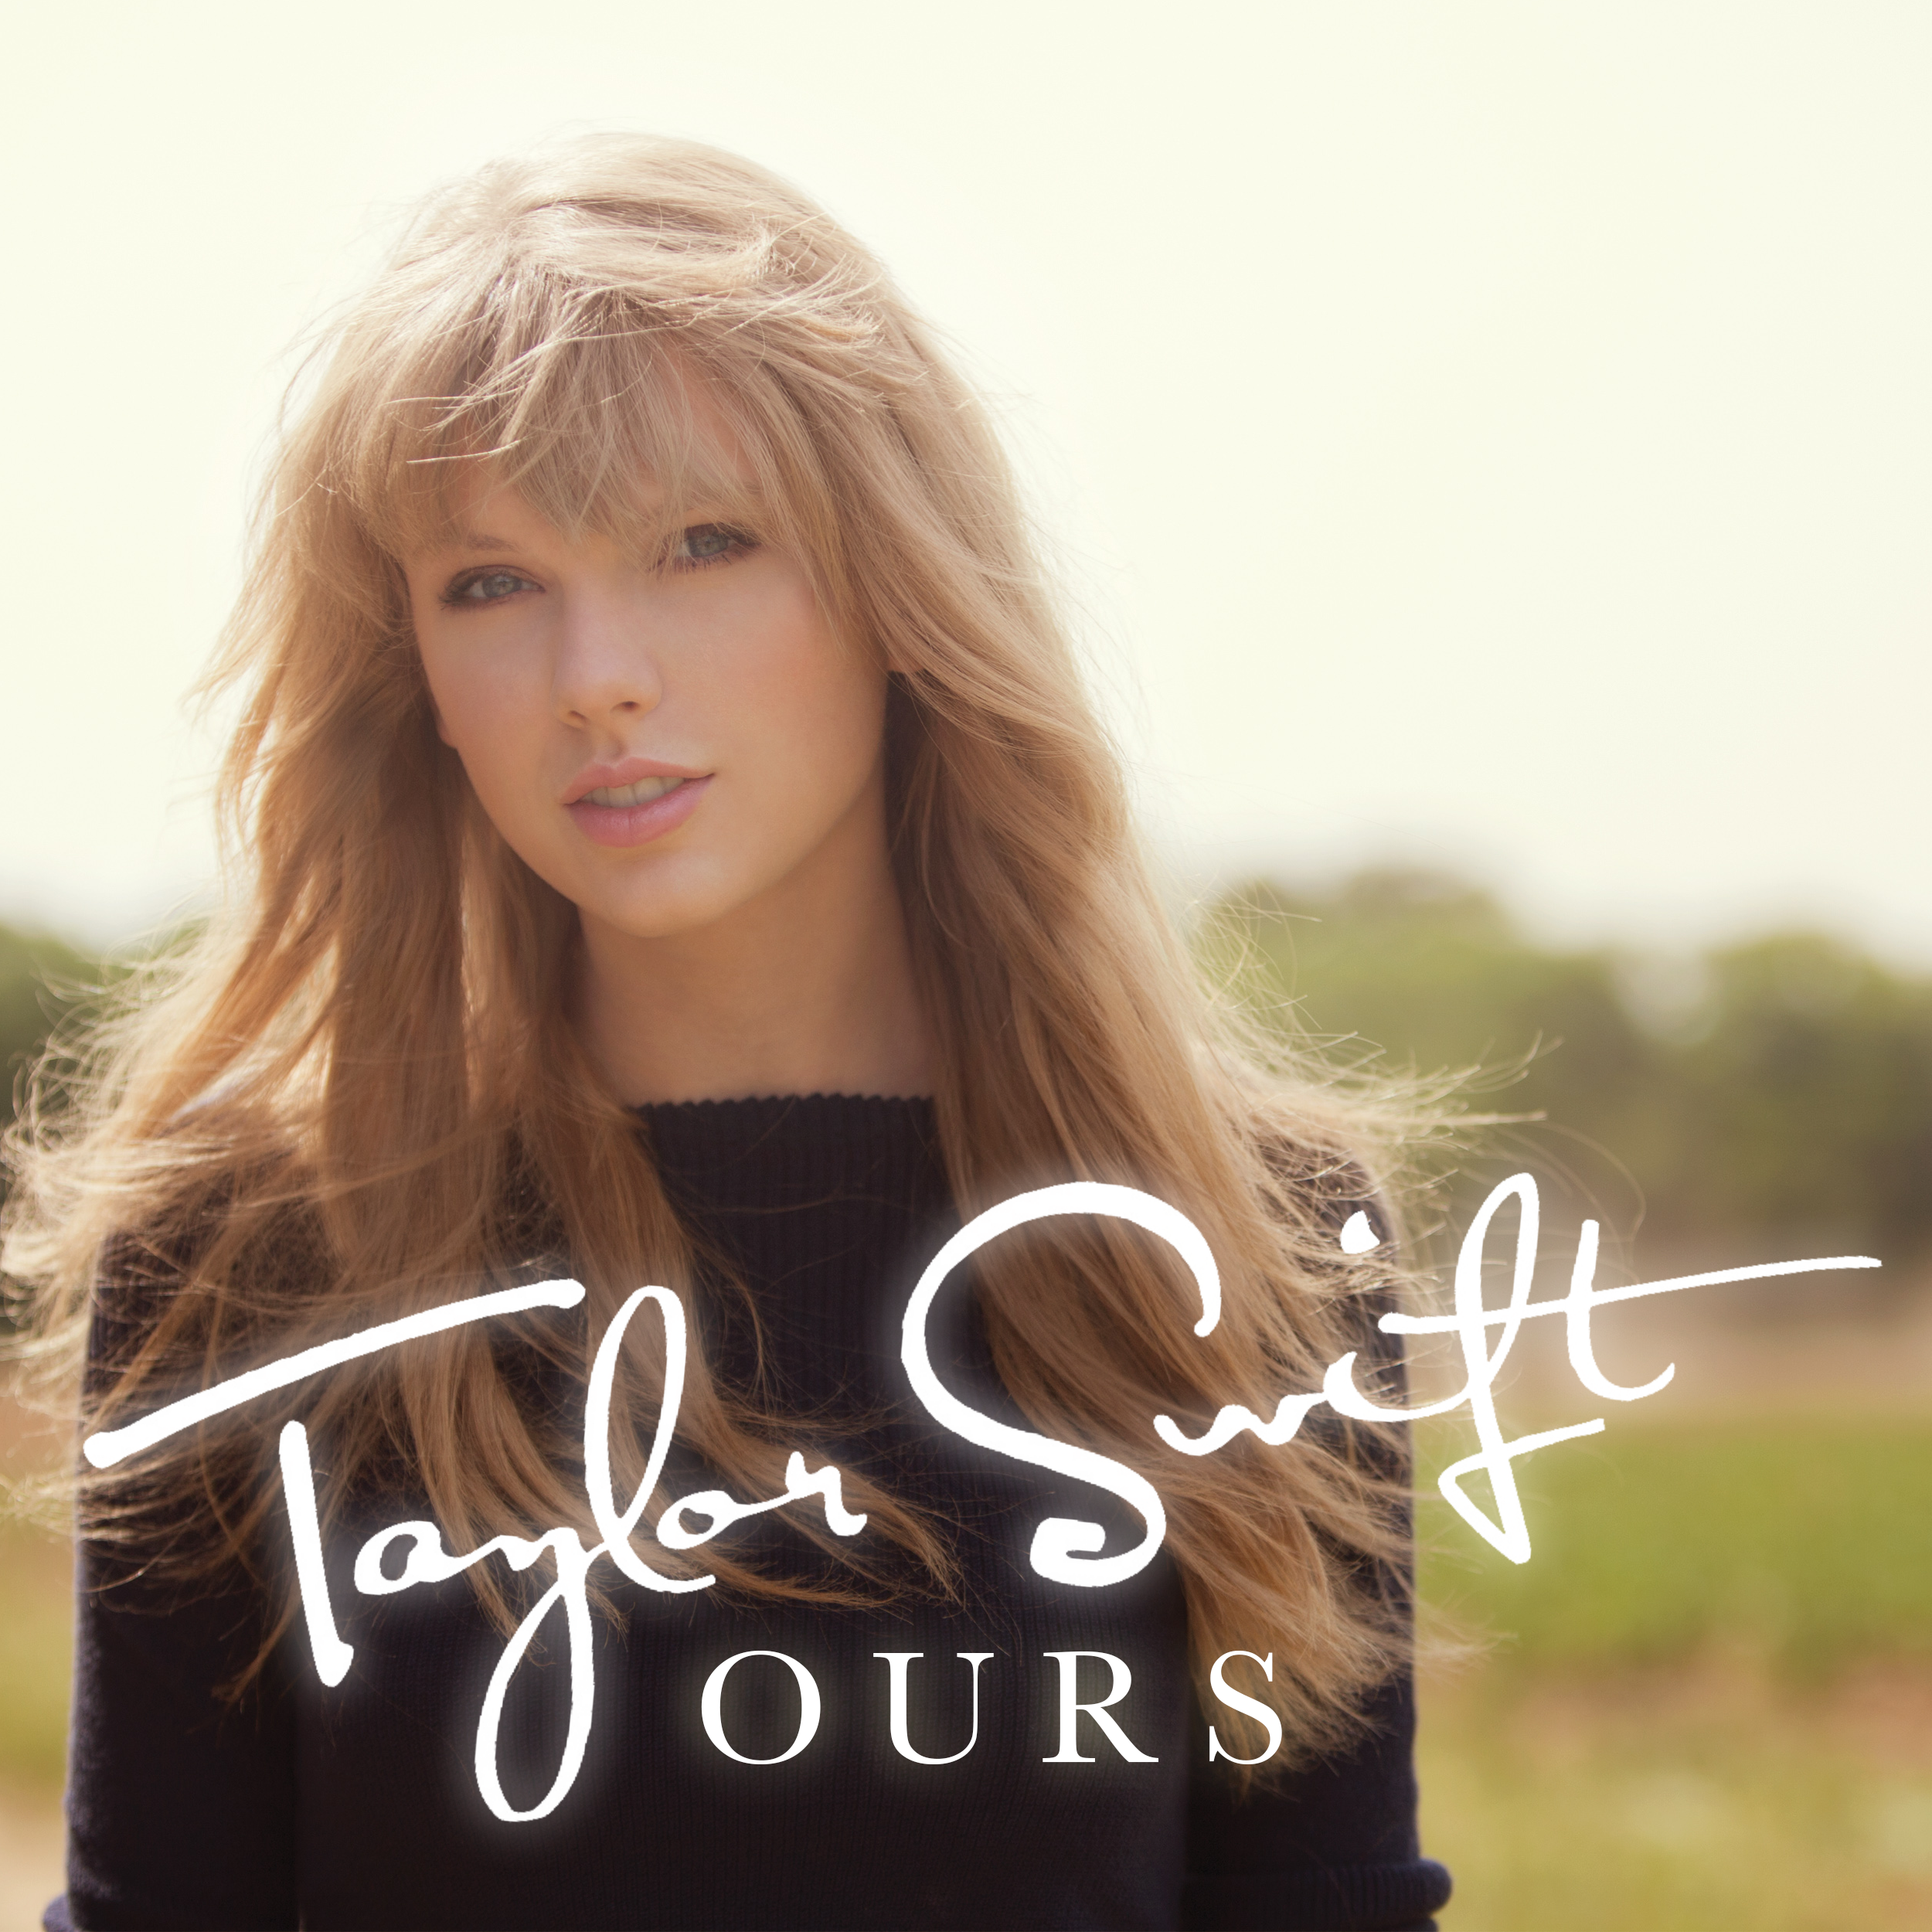 The Song Ours By Taylor Swift Reminds Me Of Calloway Summers Because Though It S A Love Song It Can Apply To All Taylor Swift Songs Taylor Swift Her Music